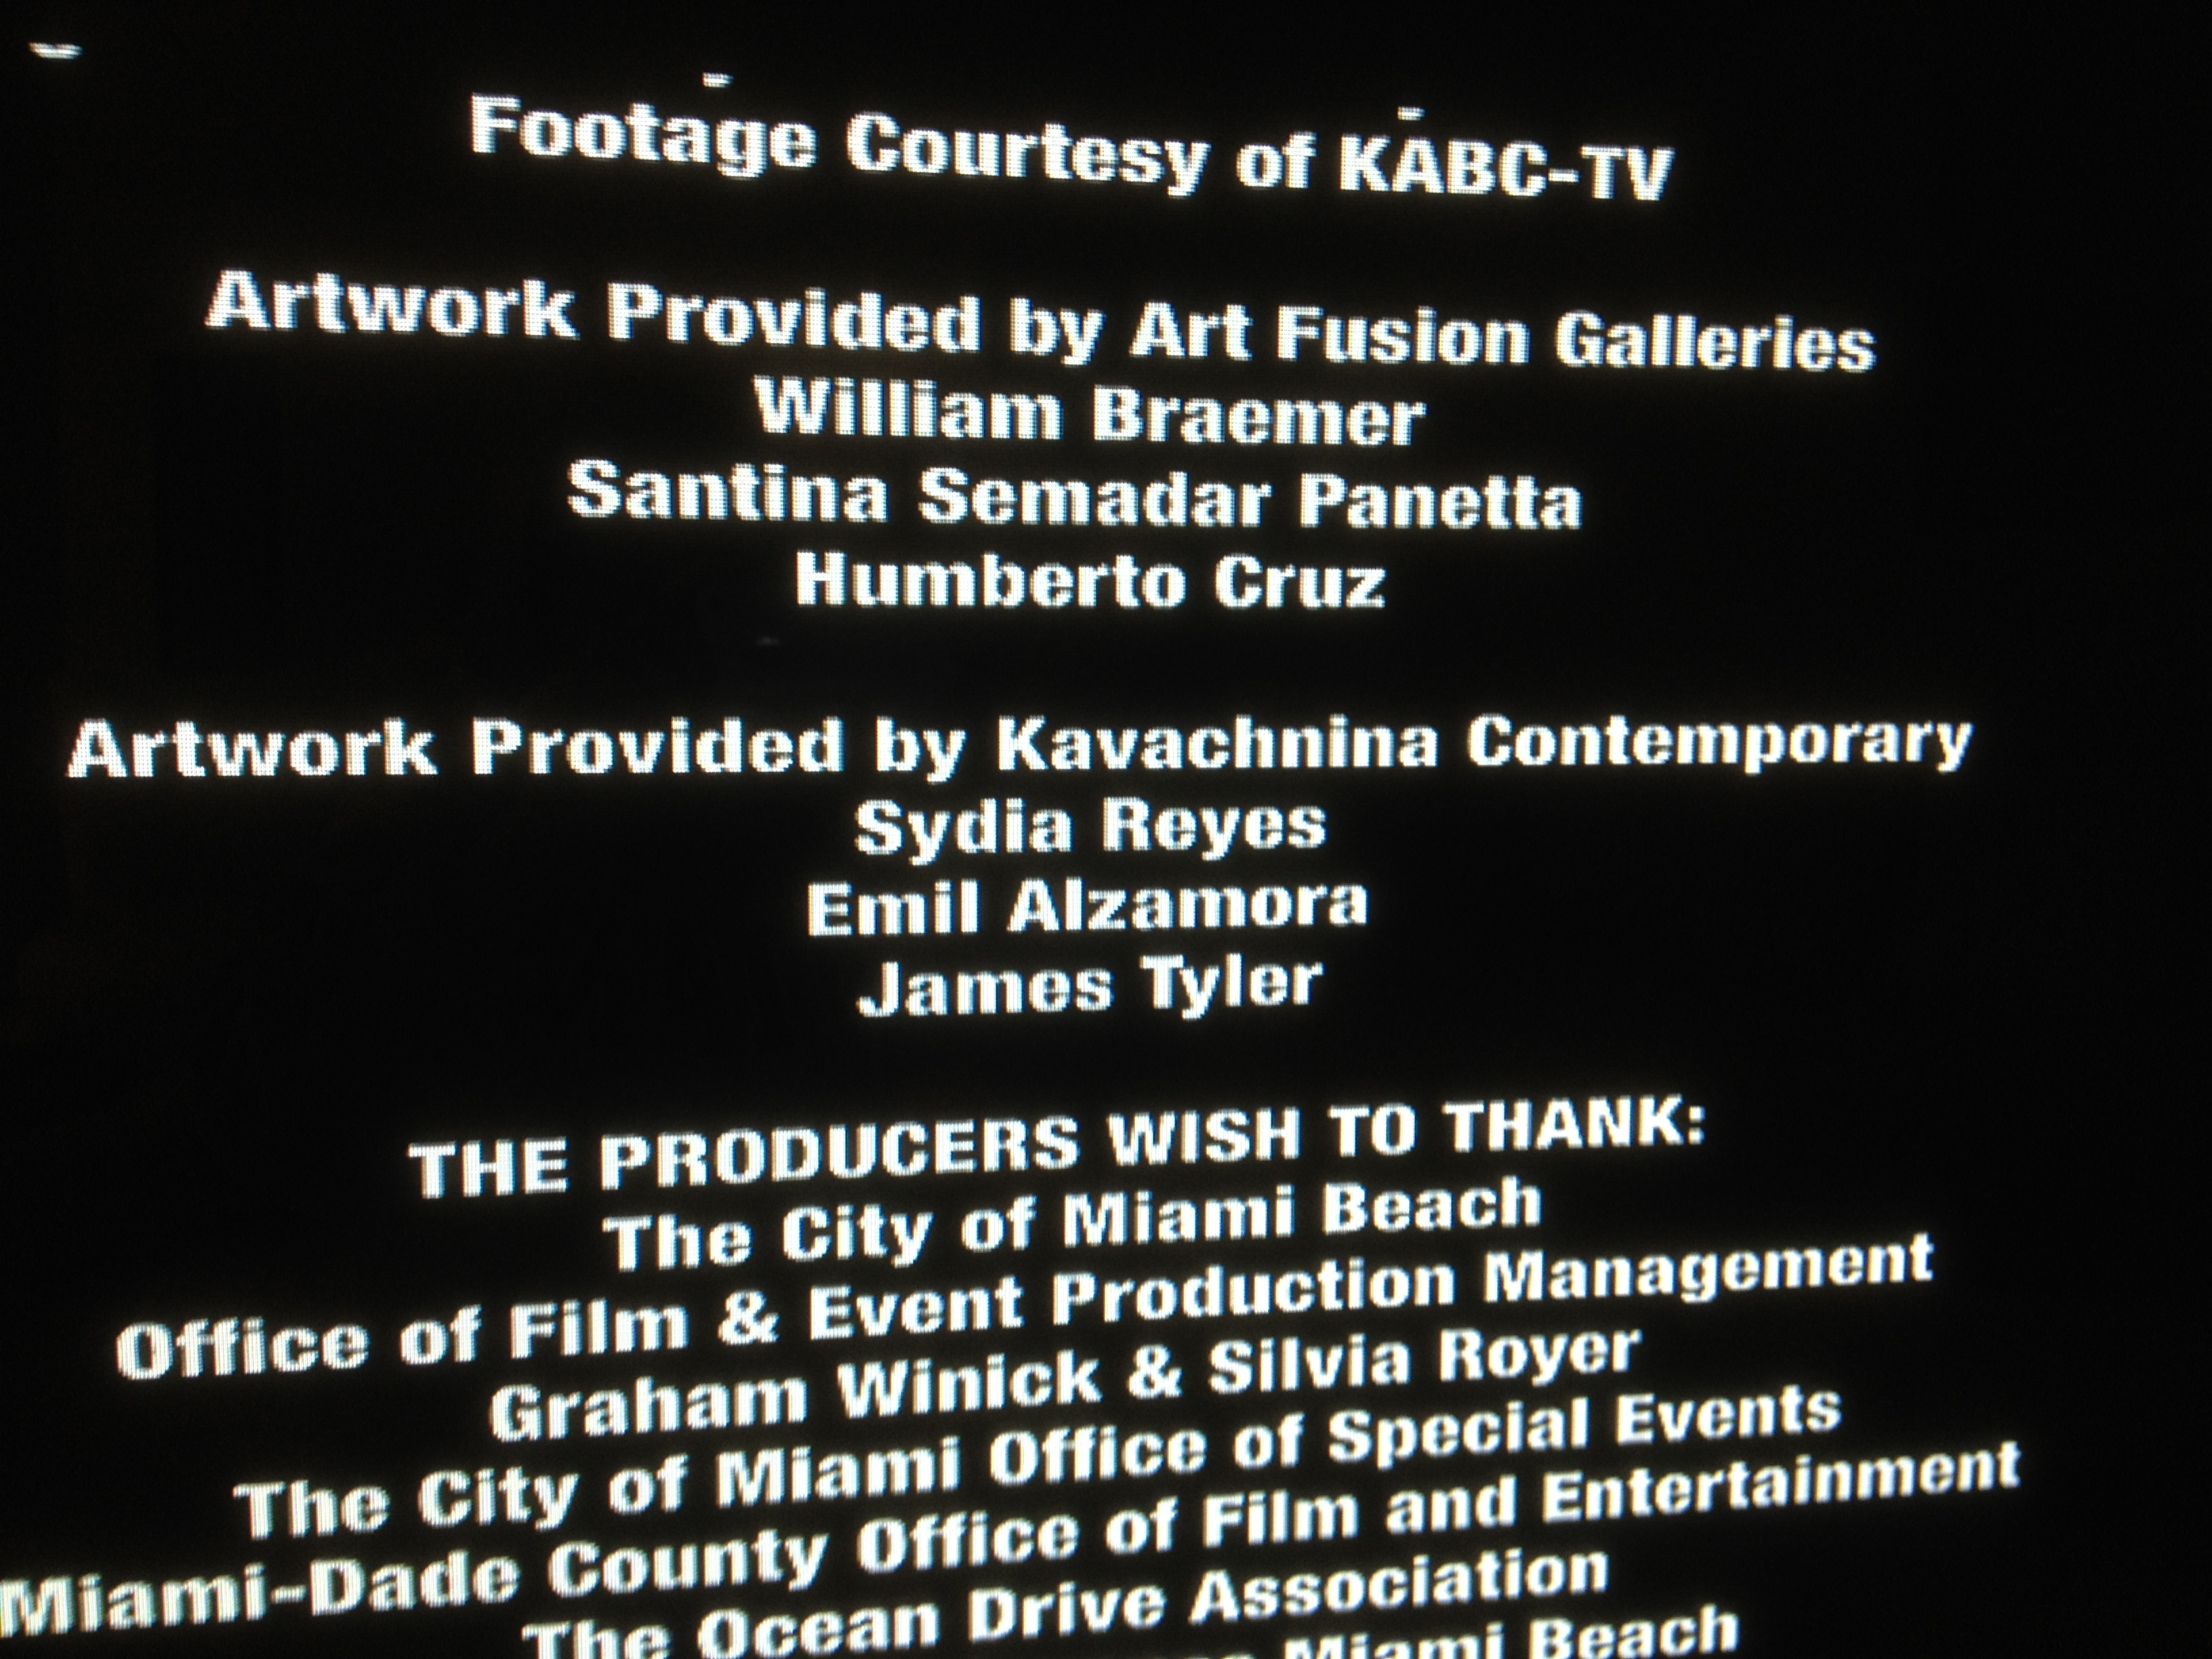 CREDITS STEP UP REVOLUTION - MUSEUM